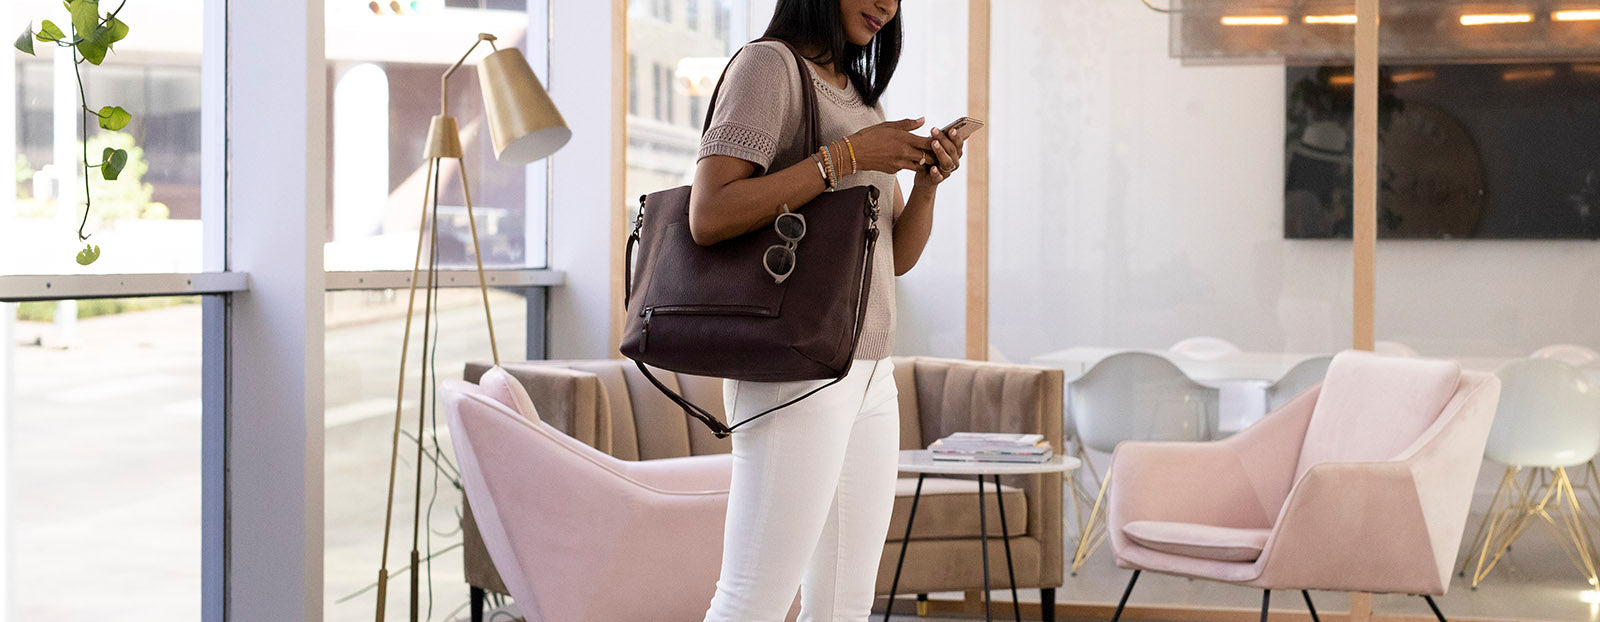 Slate Collection - The SUMNER™ Crossbody Tote - Pebbled Dark Chocolate